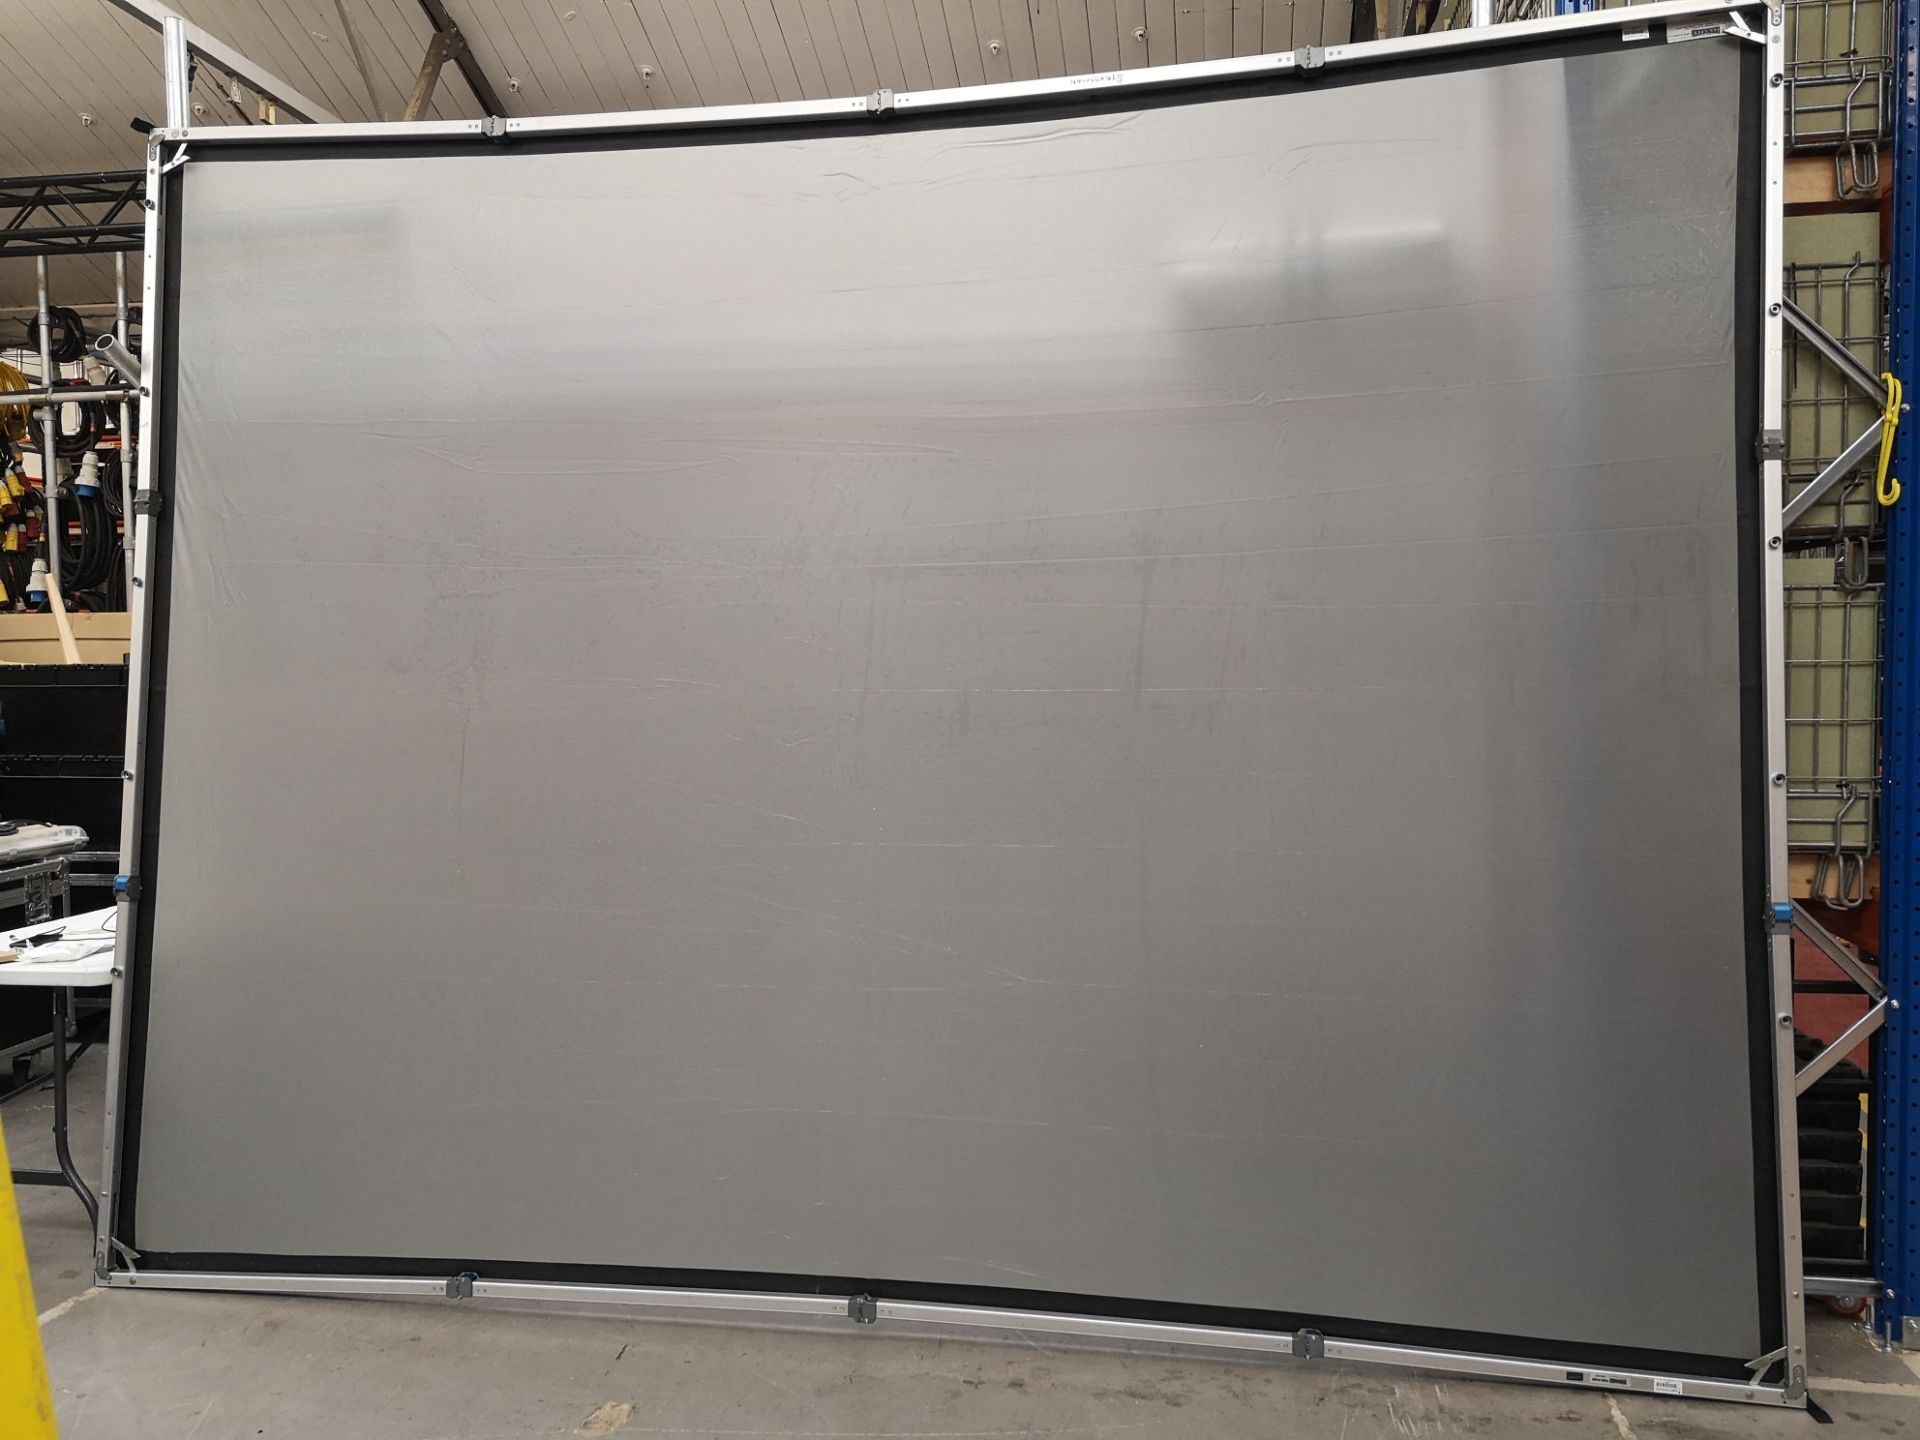 A DA-LITE 12ft x 9ft Rear Projection Fastfold Screen with frame, legs, bolts, screen surface, bag - Image 2 of 10